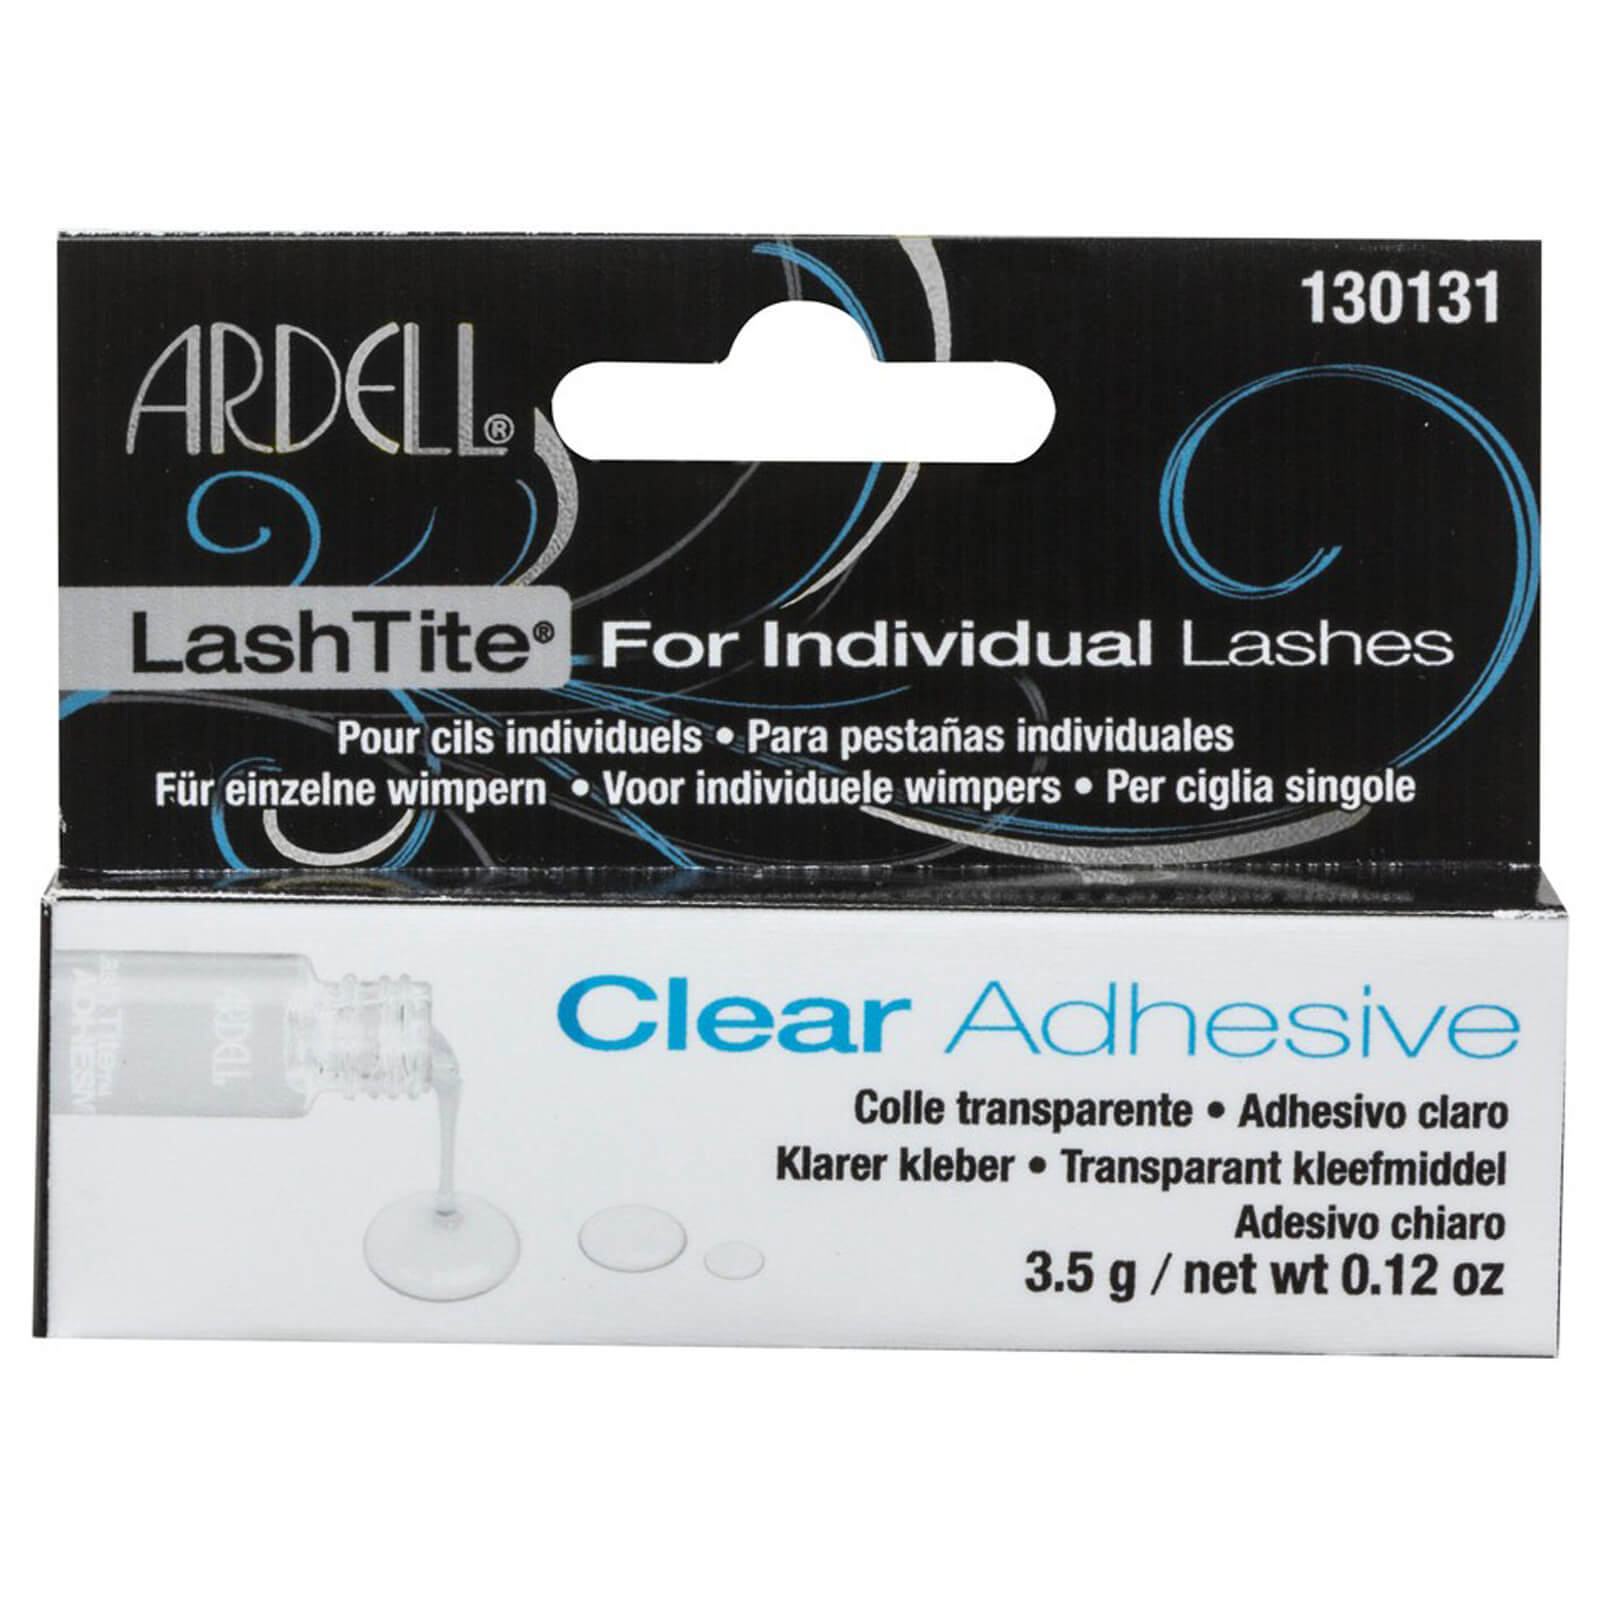 cd62efc61c1 Ardell LashTite Adhesive For Individual Lashes - Clear | Buy Online At RY